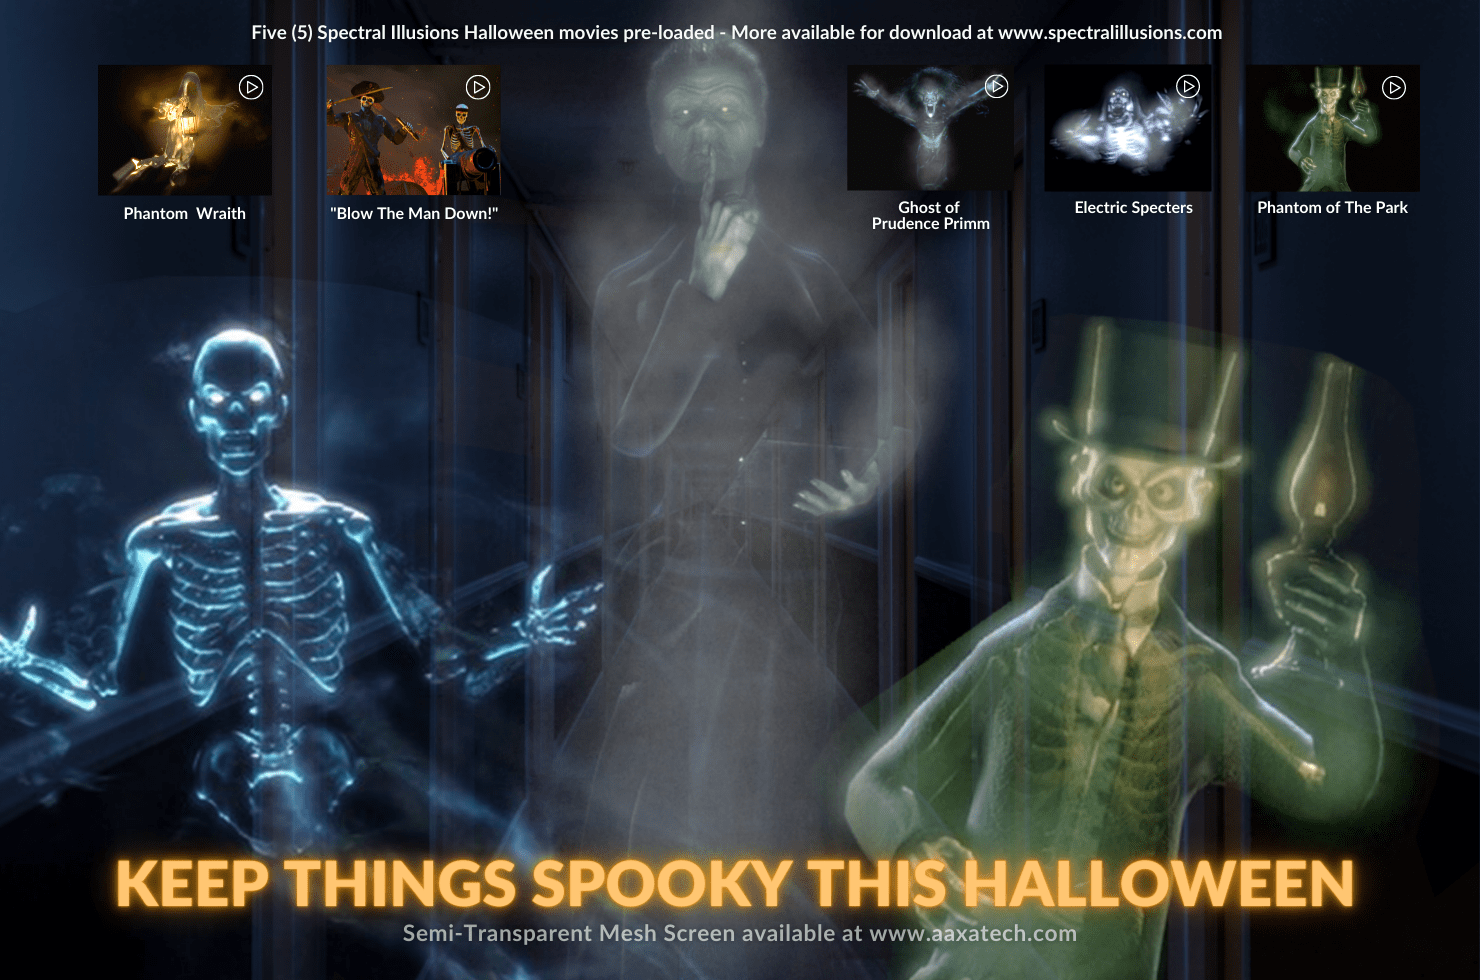 Five (5) Preloaded Scary Videos - From Phantom Wraith, Blow the Man Down, Ghost of Prudence Primm, Electric Specters, and the Phantom of the Park